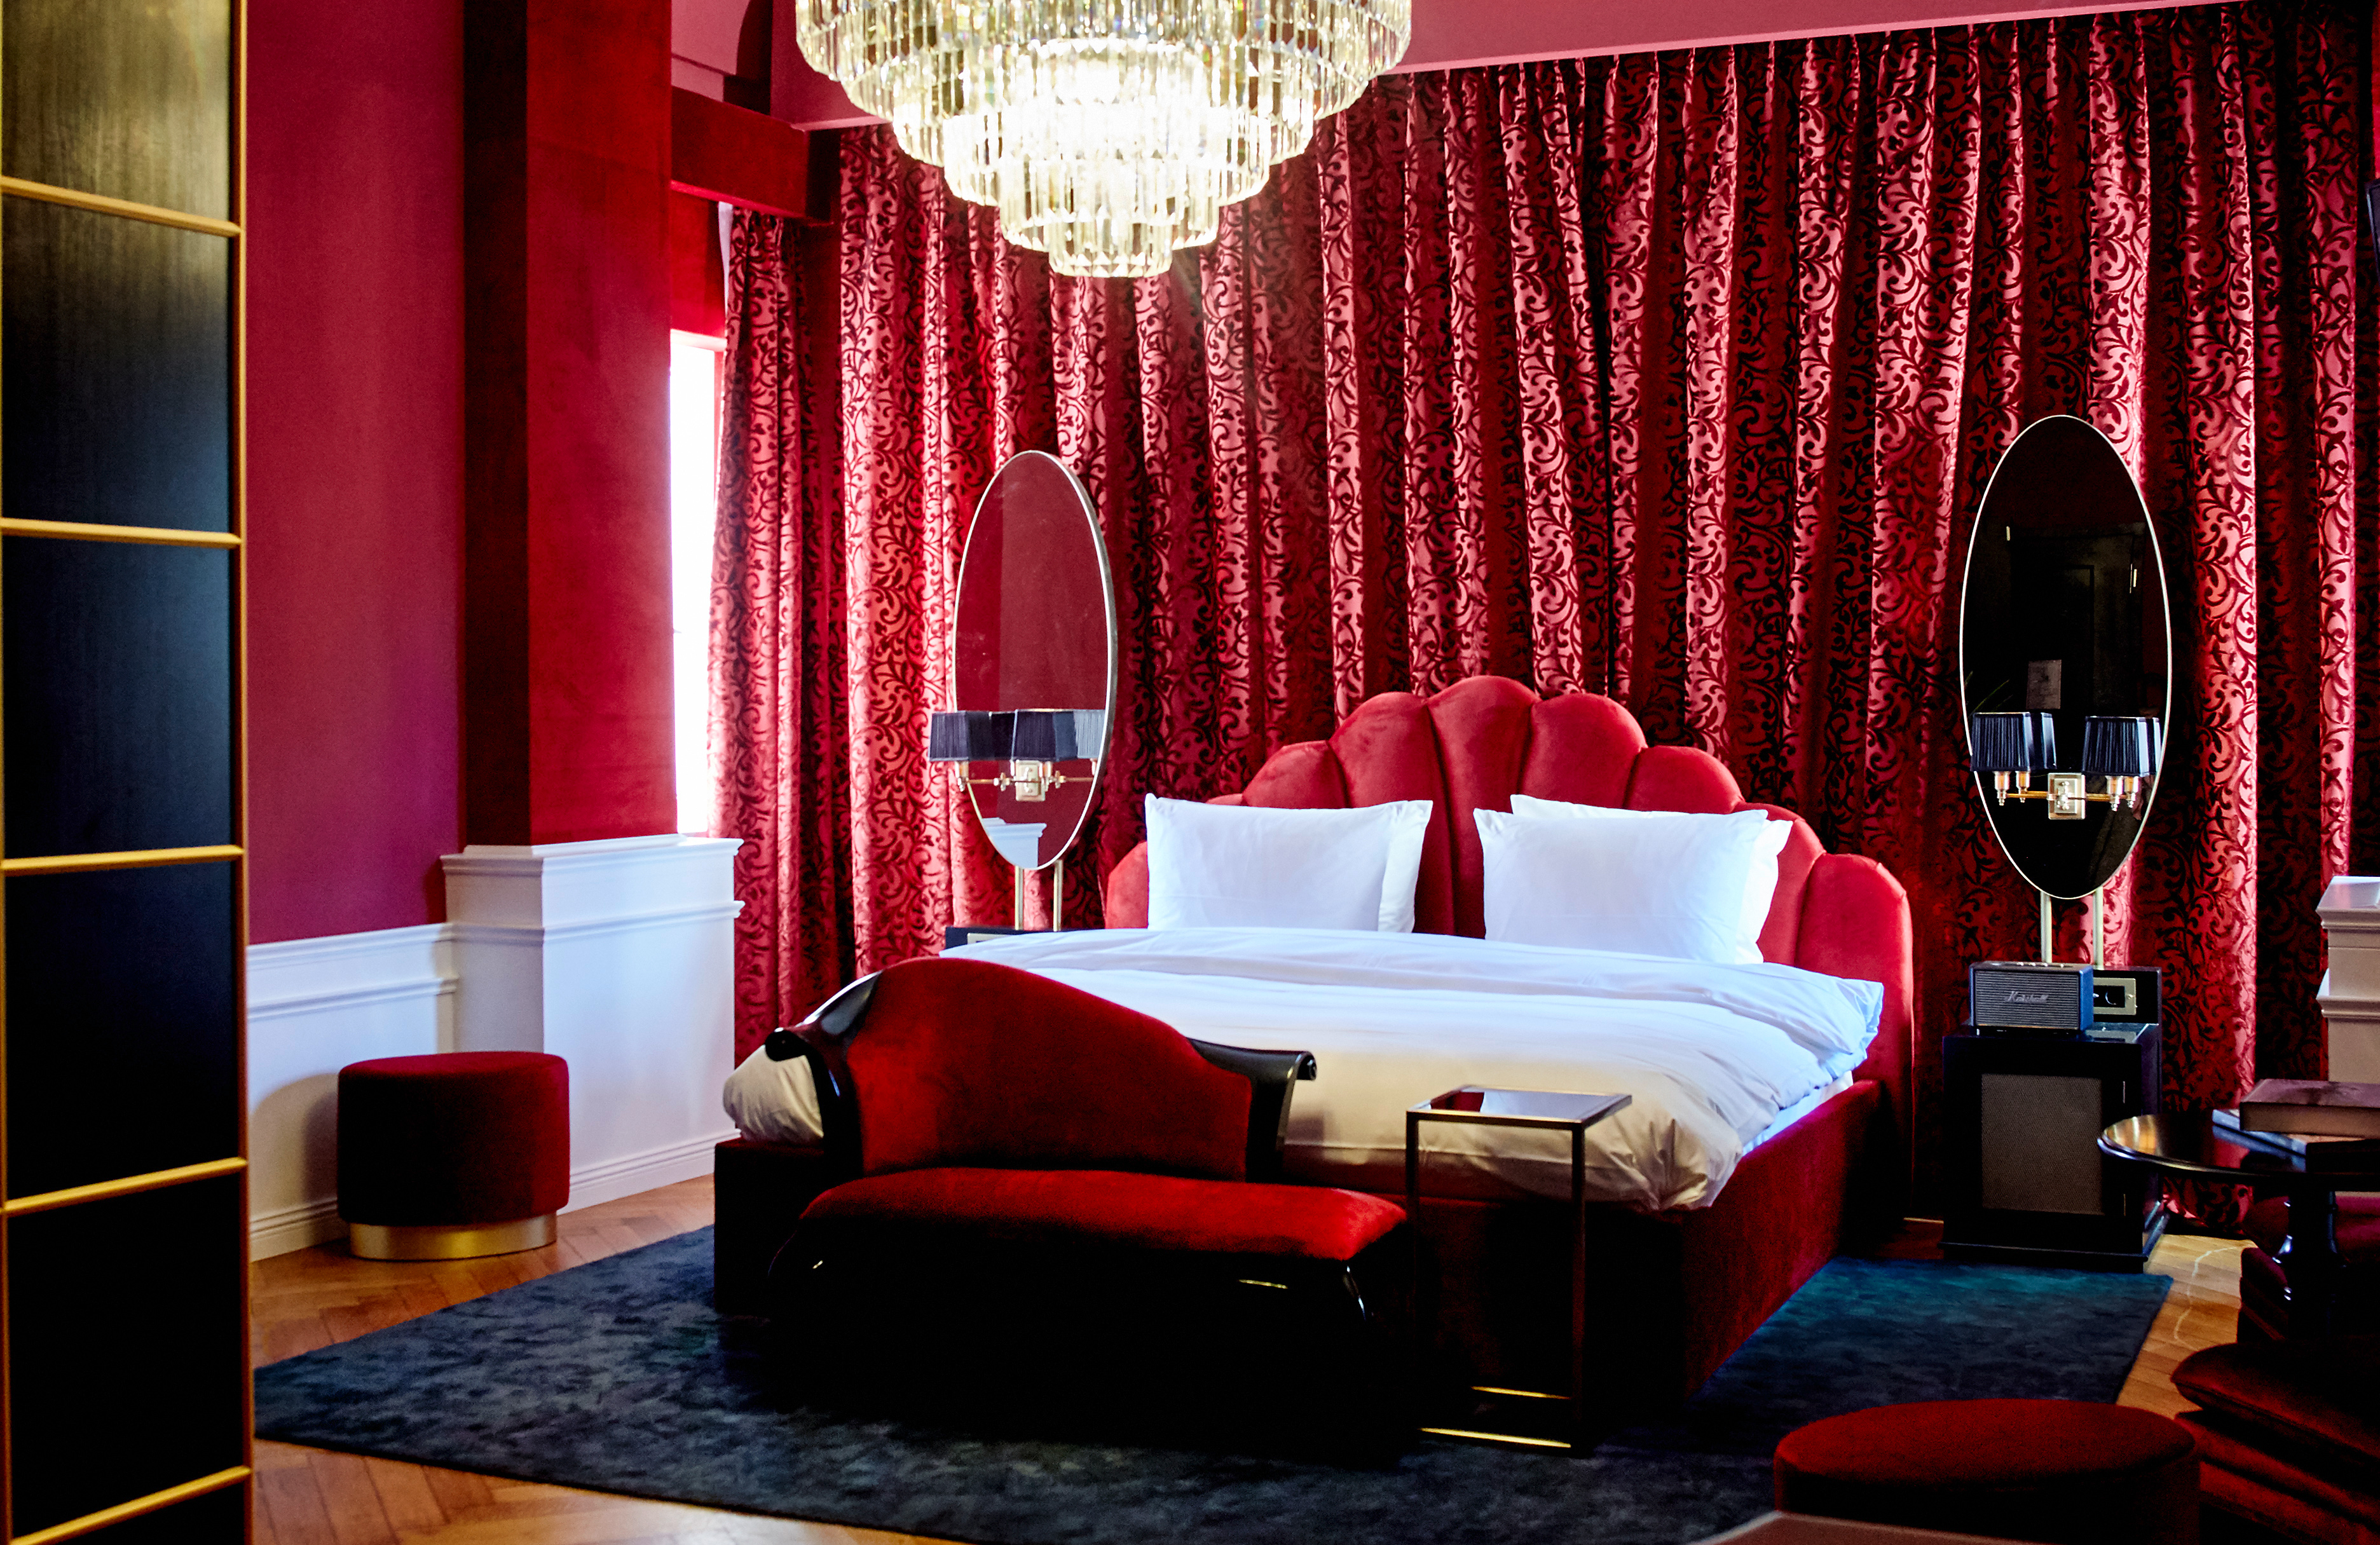 Provocateur hotel berlin unveiled hospitality net for Designer hotel berlin